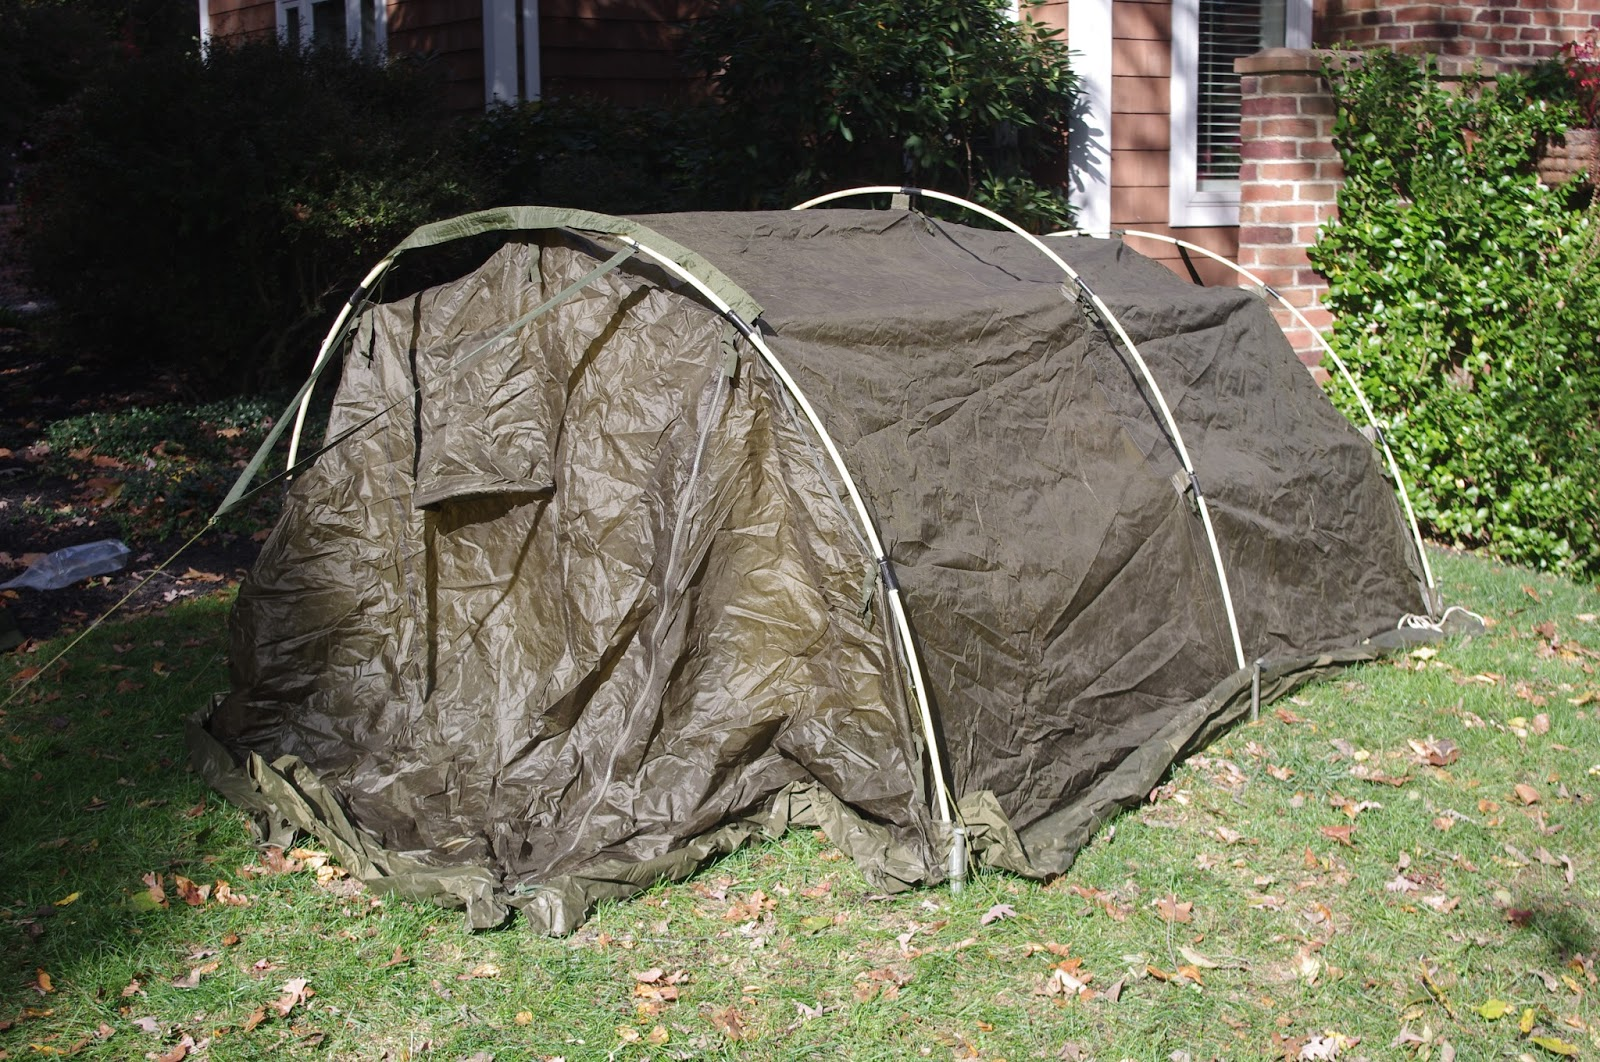 The tent has openings on both ends with the option at one end of the tent to connect two of these tents together end to end. & Surviving the Worst of Mother Nature in British Style: Looking for ...